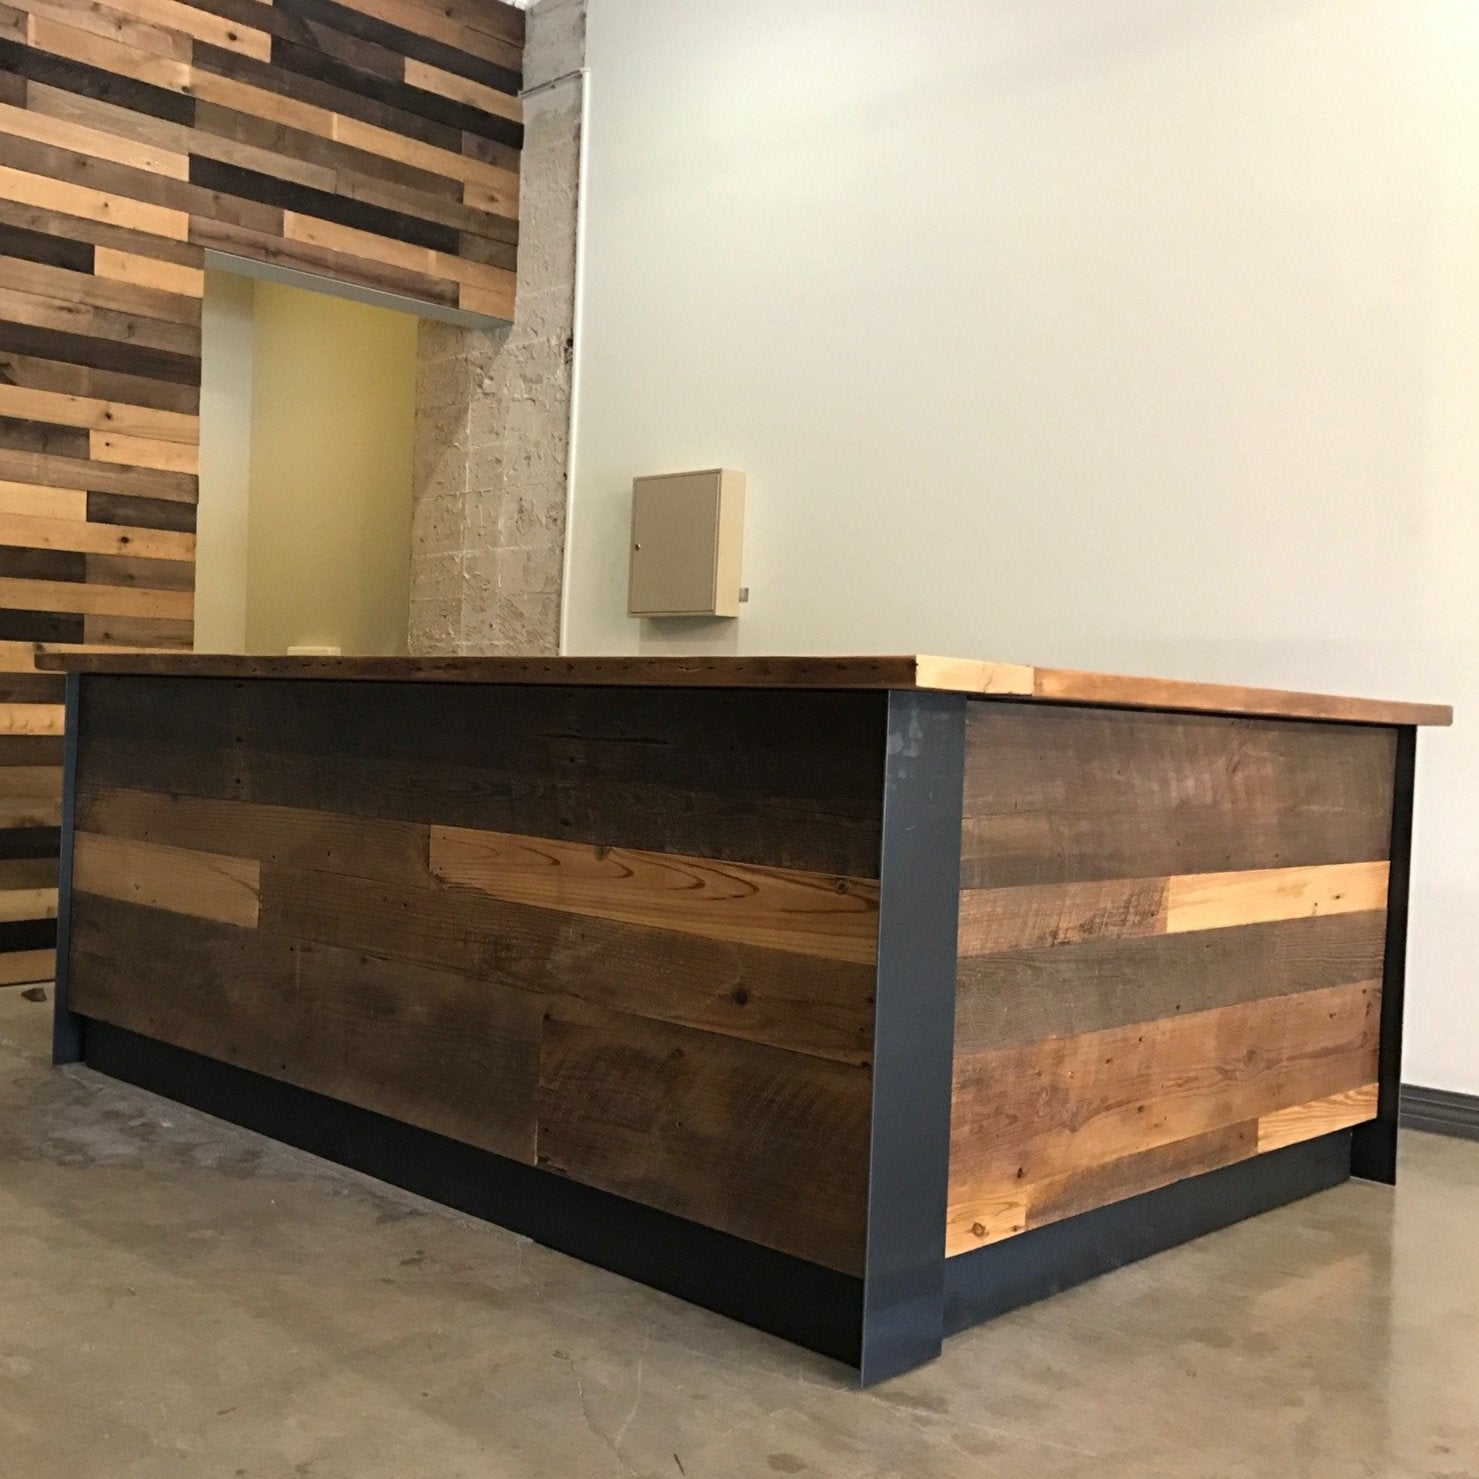 213 Reception Desk